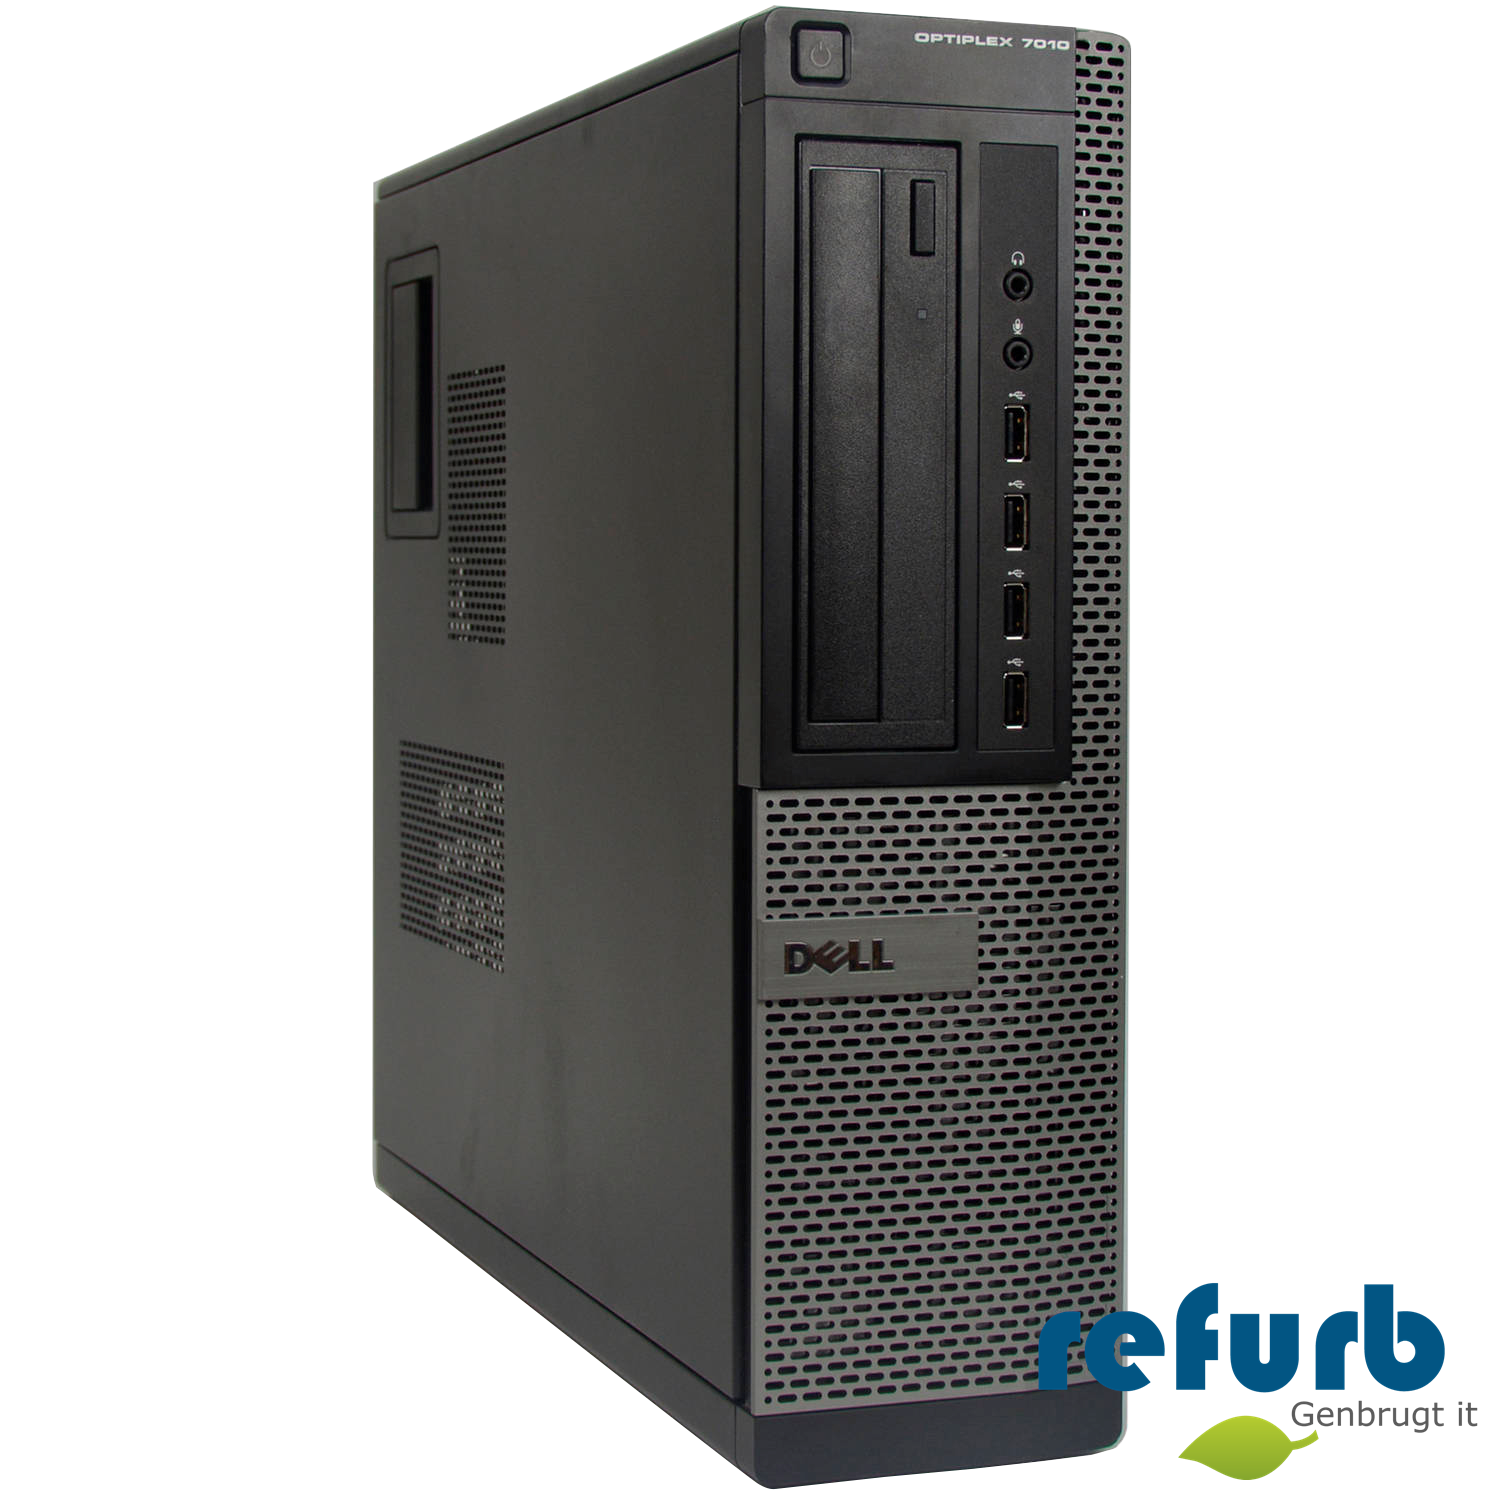 Dell Dell optiplex 7010 dt fra refurb